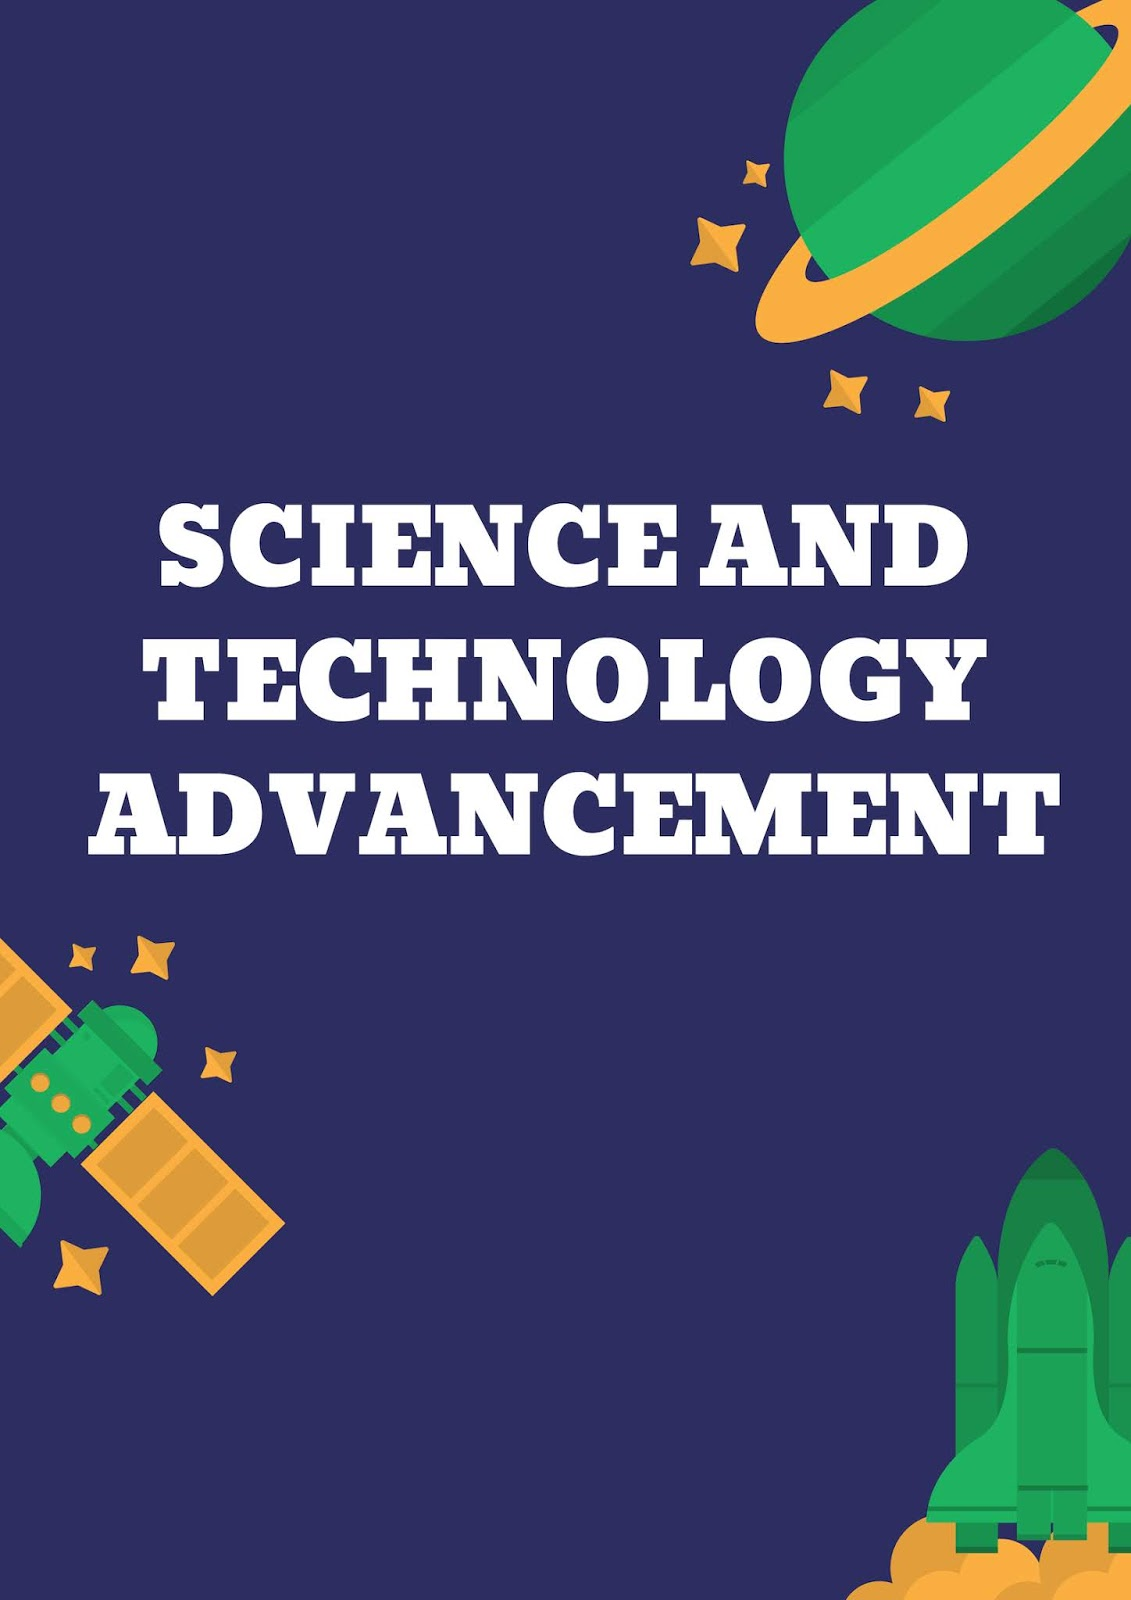 essay on science and technology advancement  essay pathshala advancement in science and technology has positively influenced peoples  lifestyles on the other hand